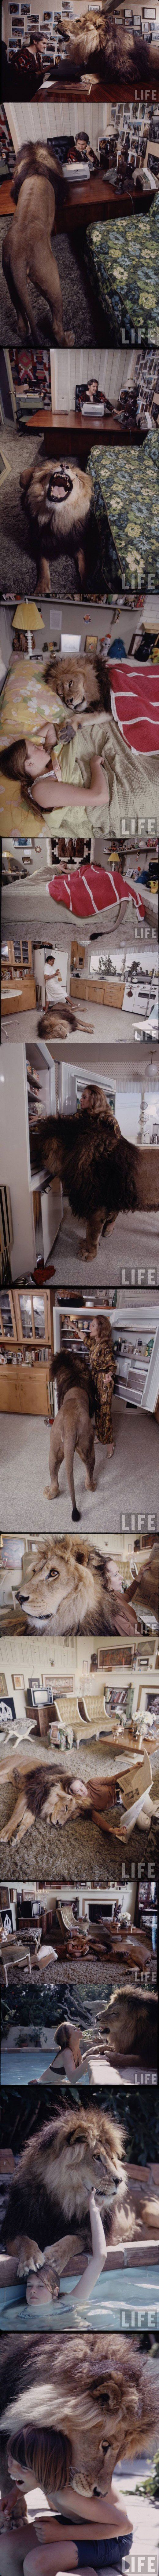 Living with a lion--Tippi Hedren and Melanie Griffith at home